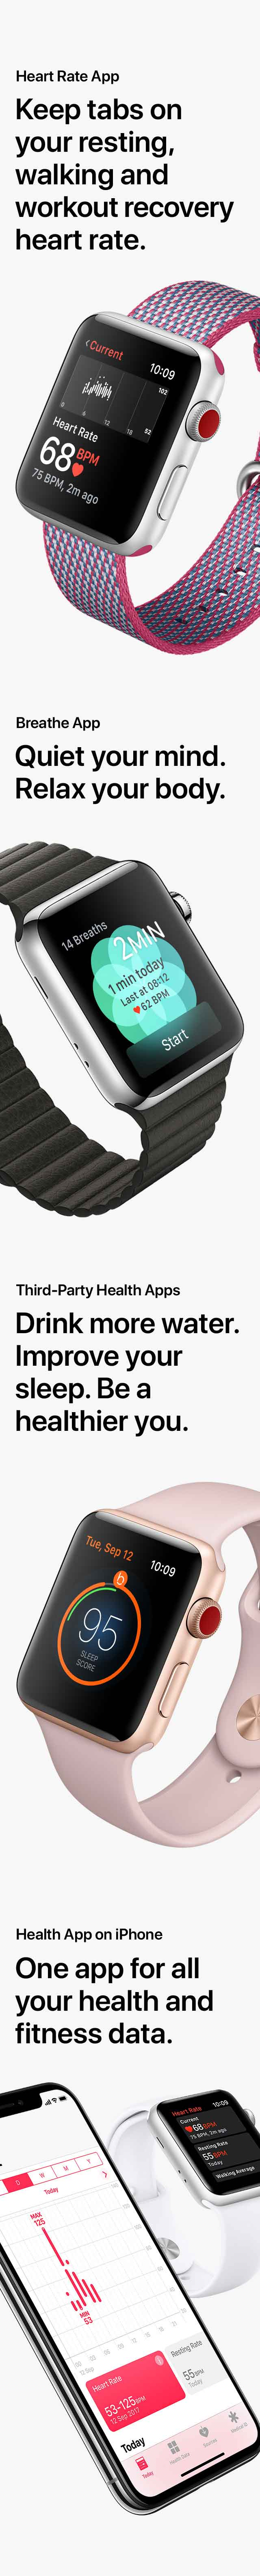 Apple Watch Series 3 Health Features